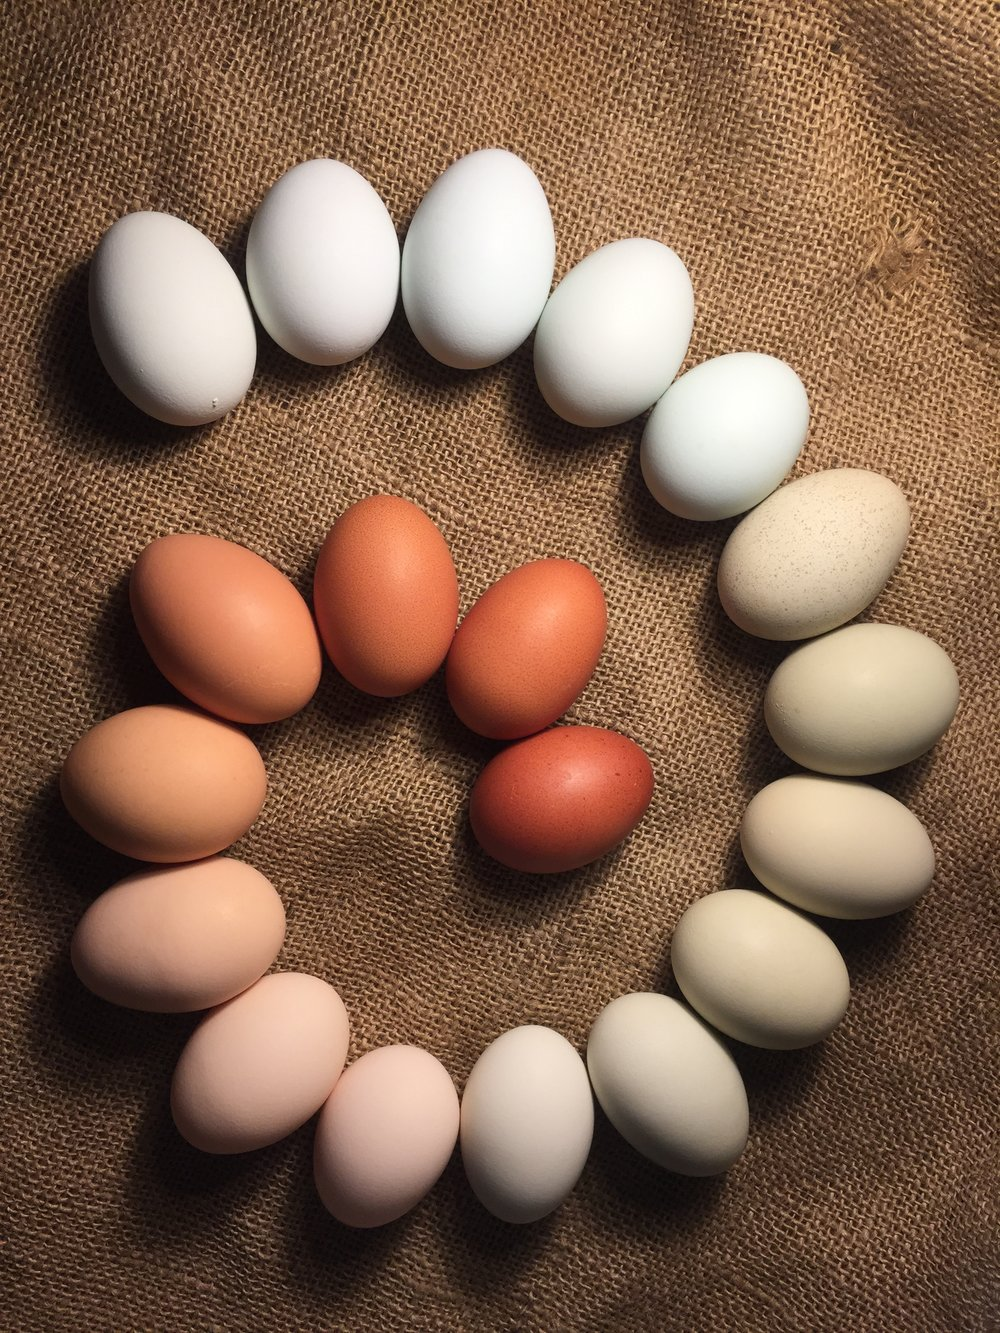 Rainbow of eggs